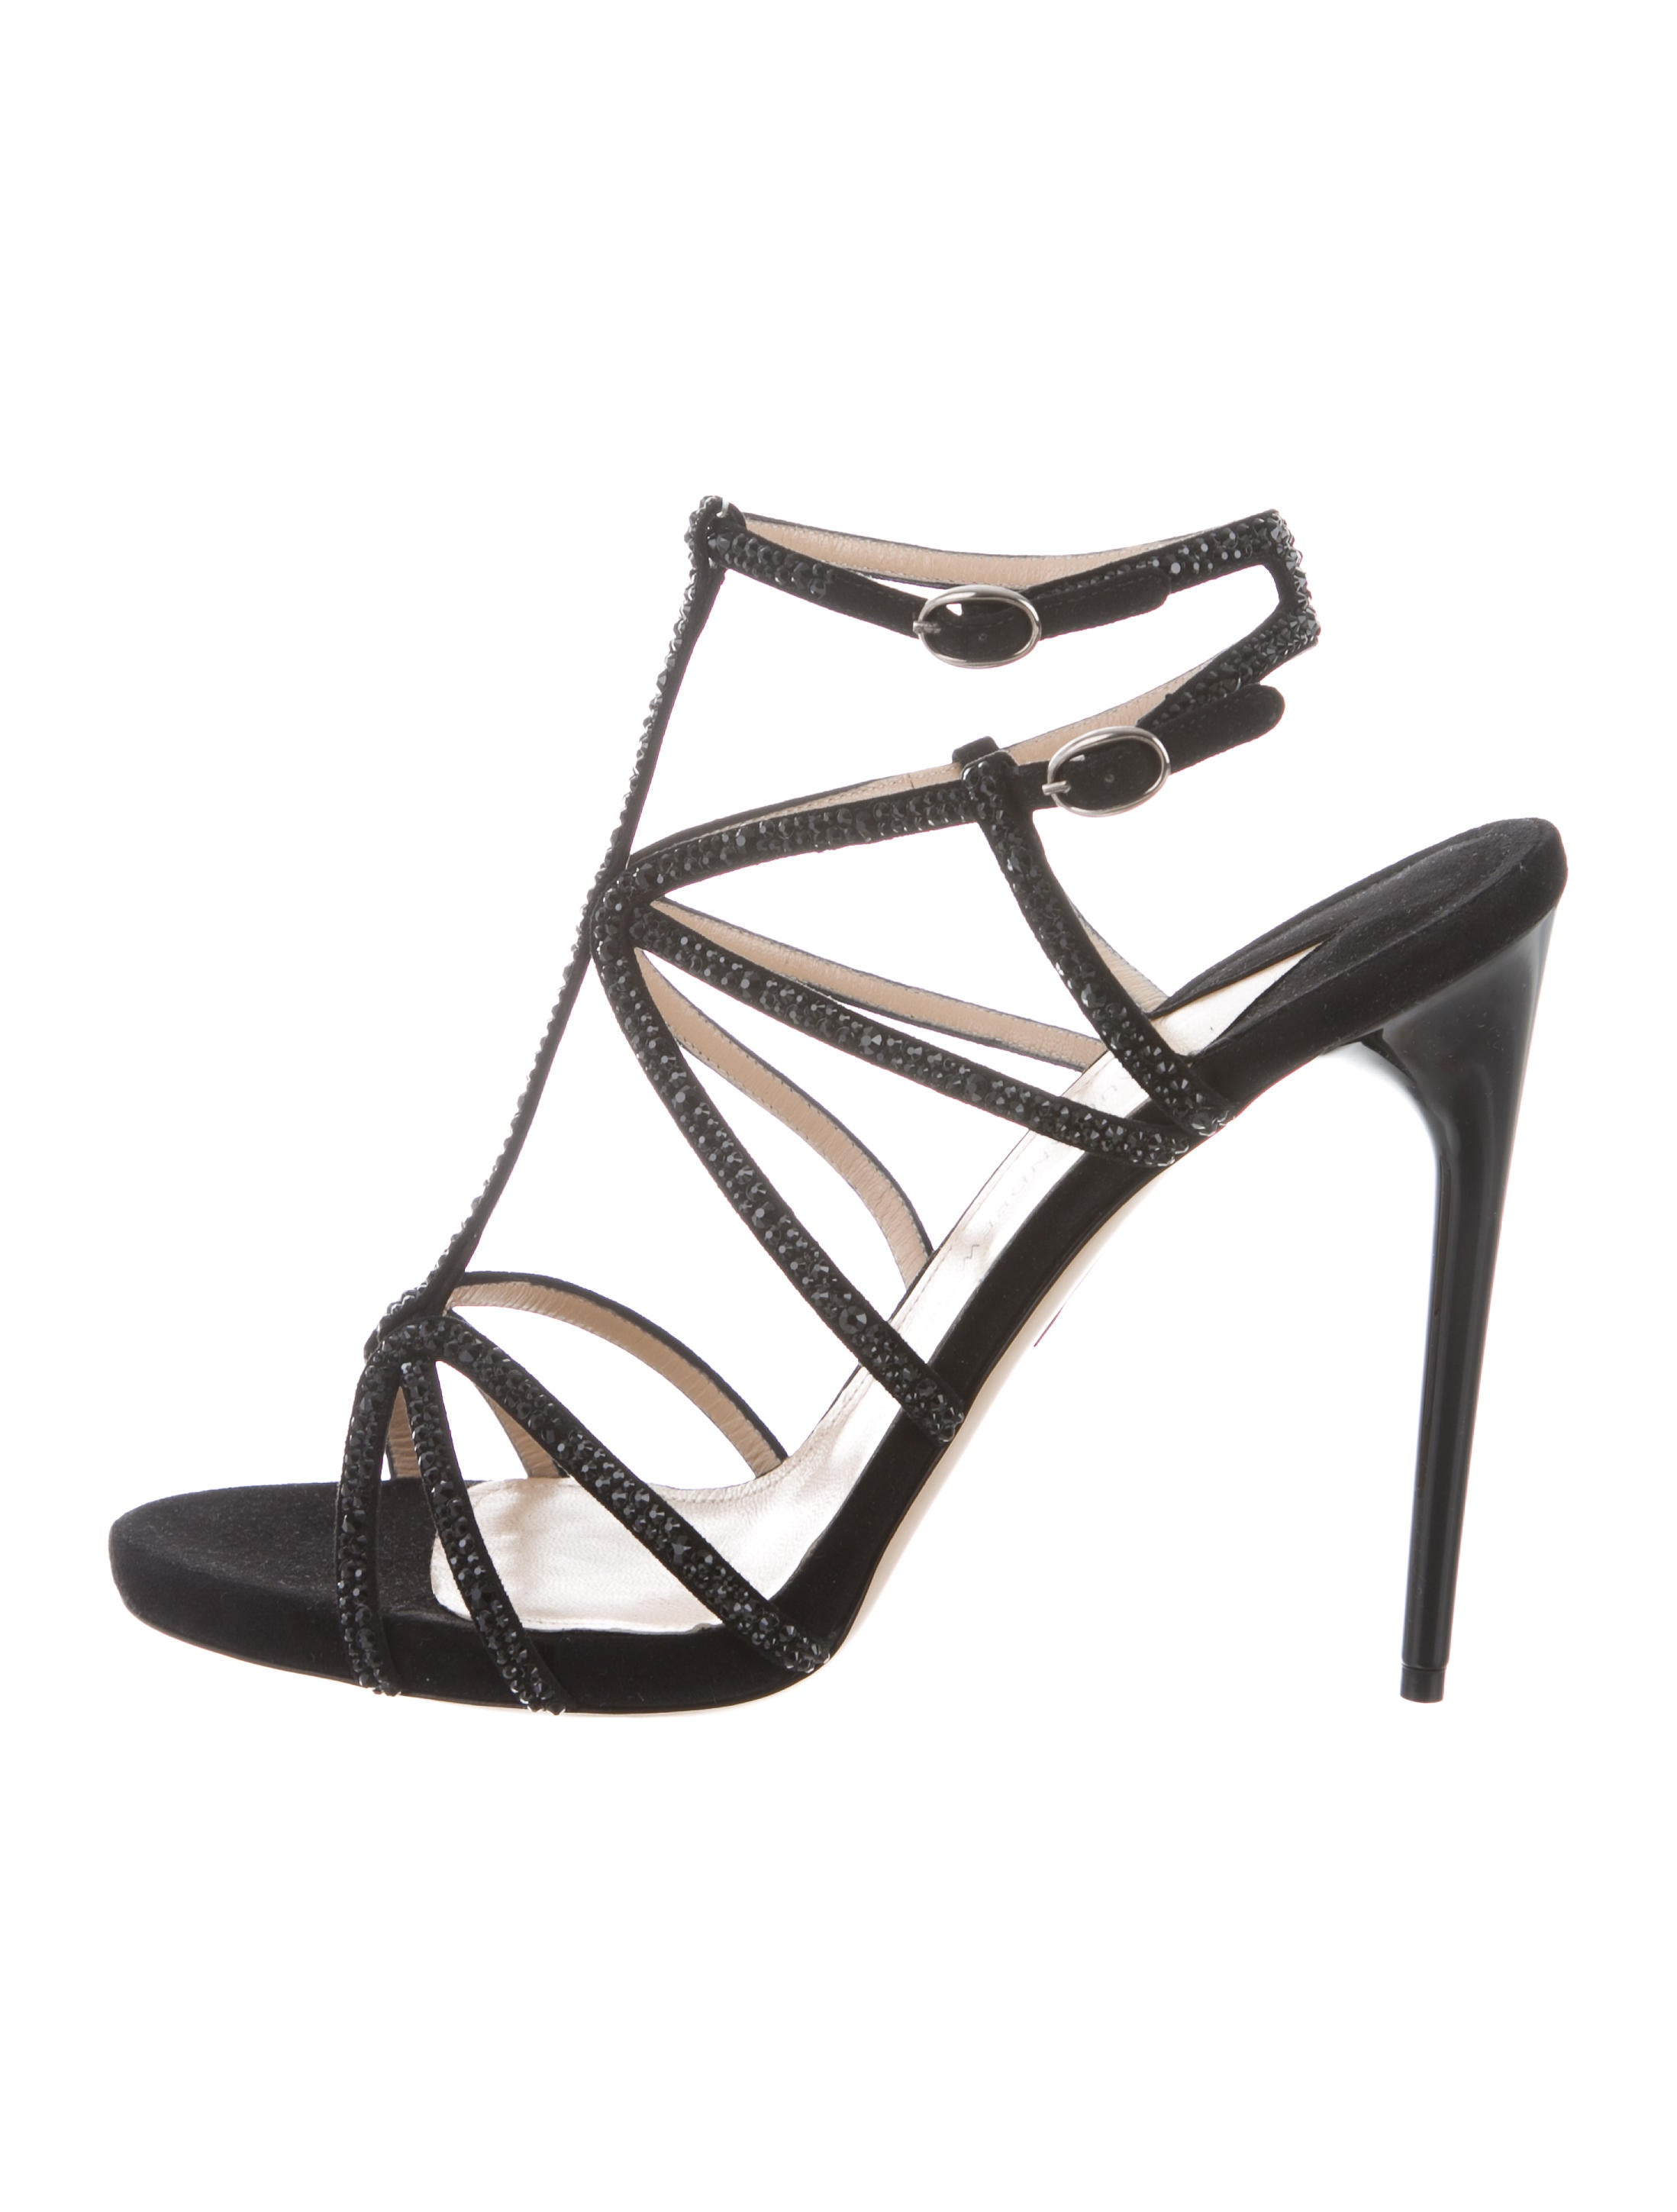 Paul Andrew Multistrap Python Sandals best store to get sale online buy cheap Cheapest pg0tGg